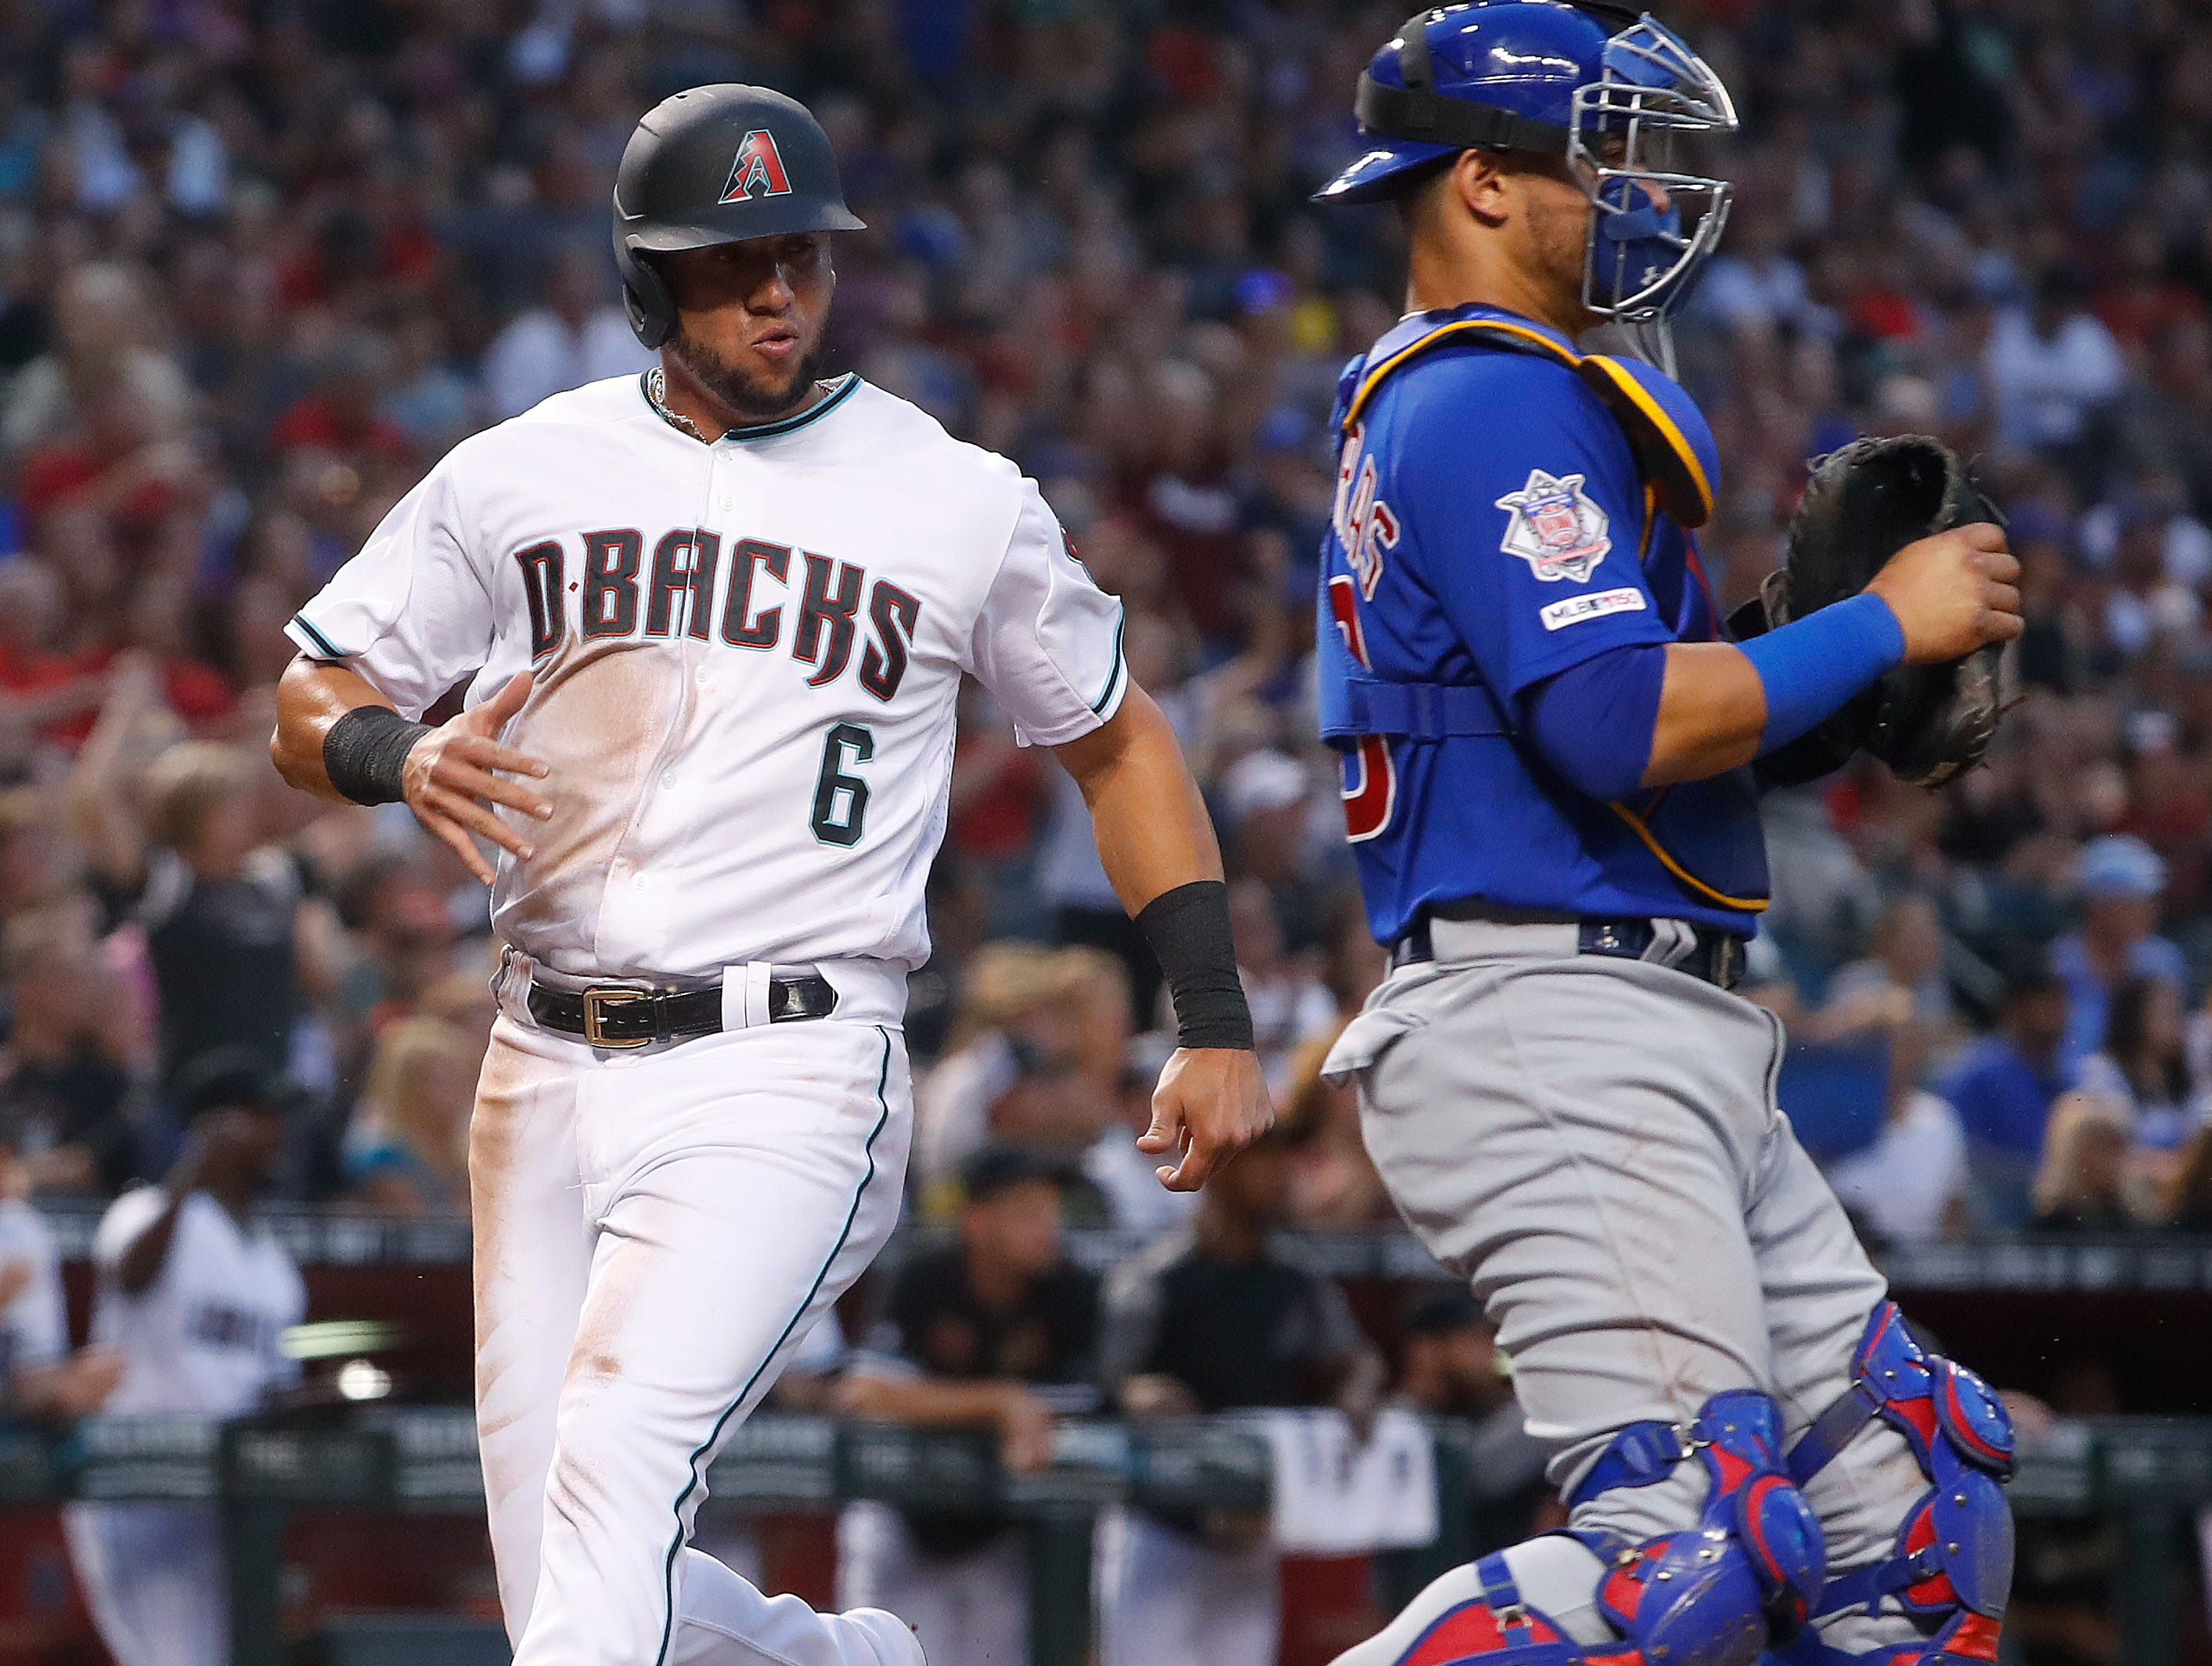 Diamondbacks' David Peralta (6) steps on home plate past Cubs' Willson Contreras (40) scoring during the first inning at Chase Field in Phoenix, Ariz. on April 26, 2019.